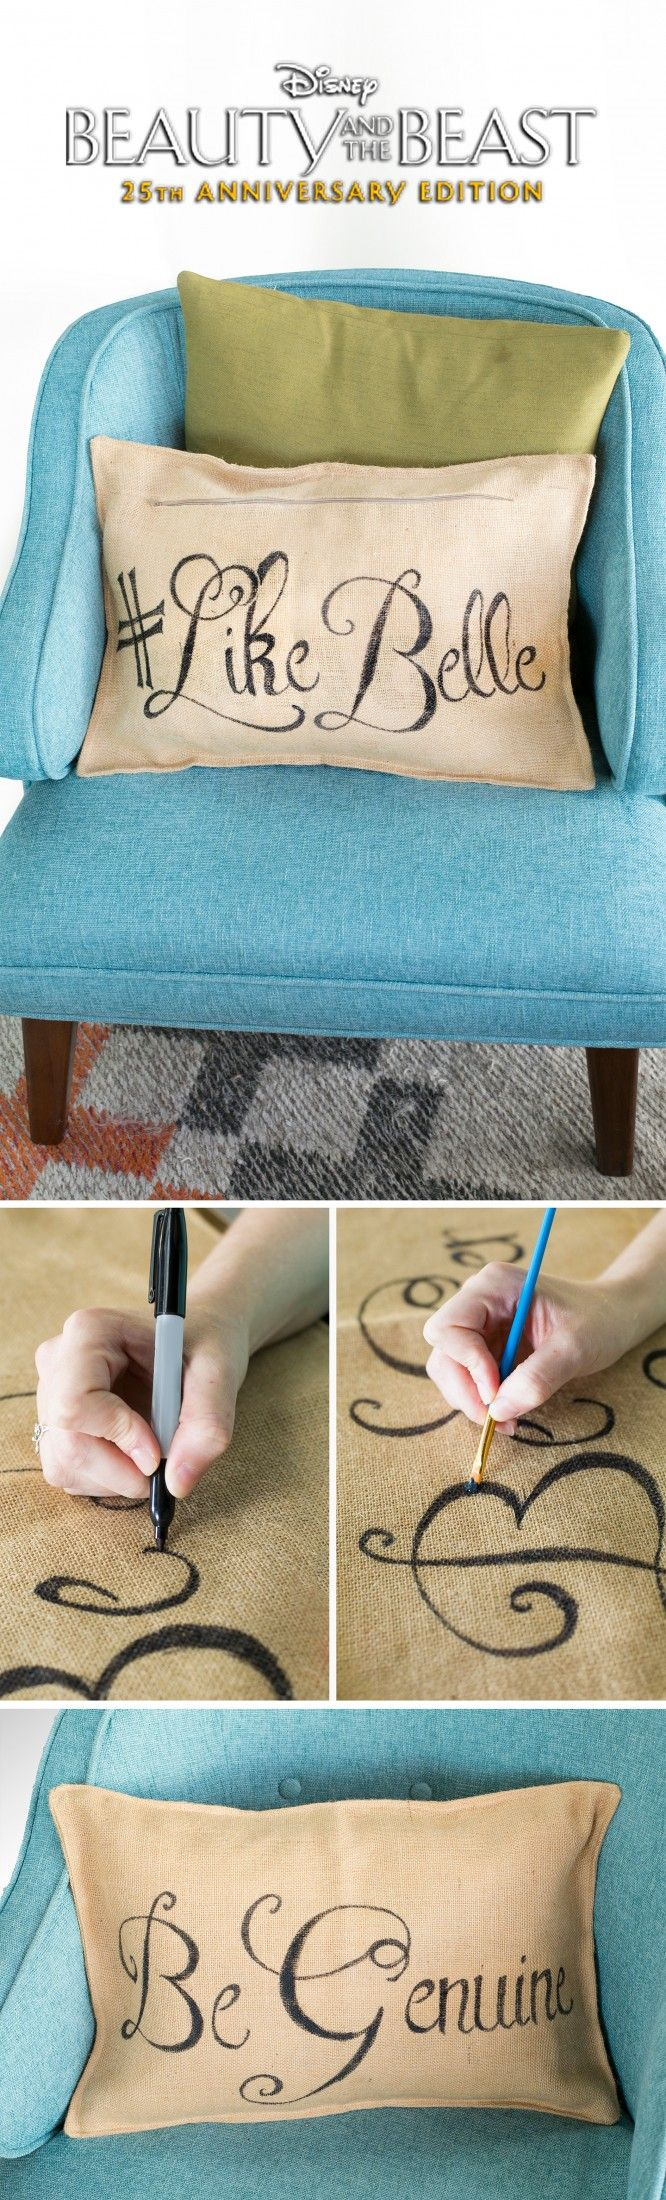 Make your humble abode a welcoming space with DIY #LikeBelle pillows.